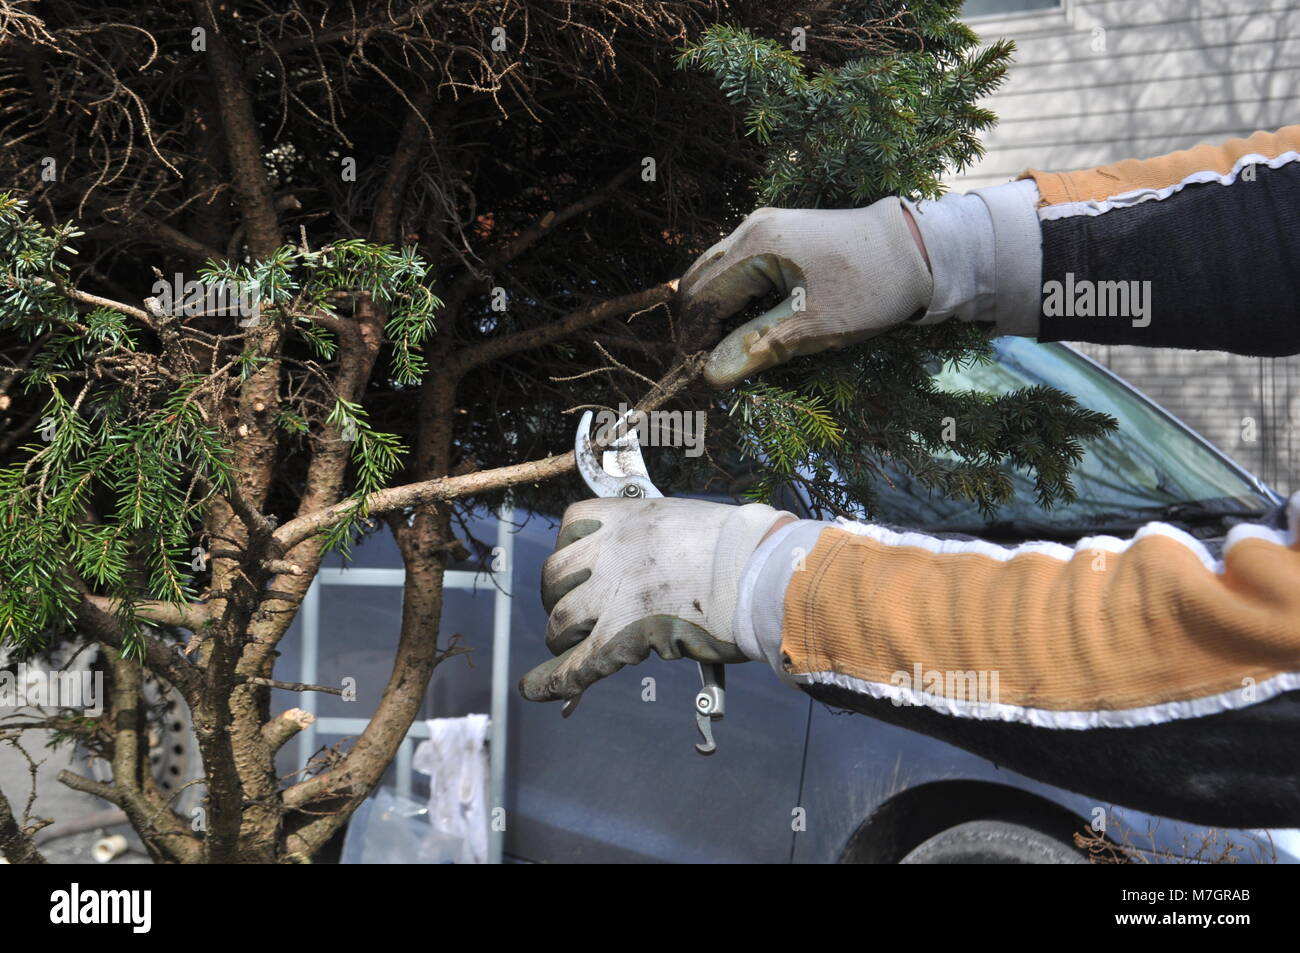 Man trimming and cutting dead branches from a tree during spring garden work. Spring garden and yard work - repairing - Stock Image